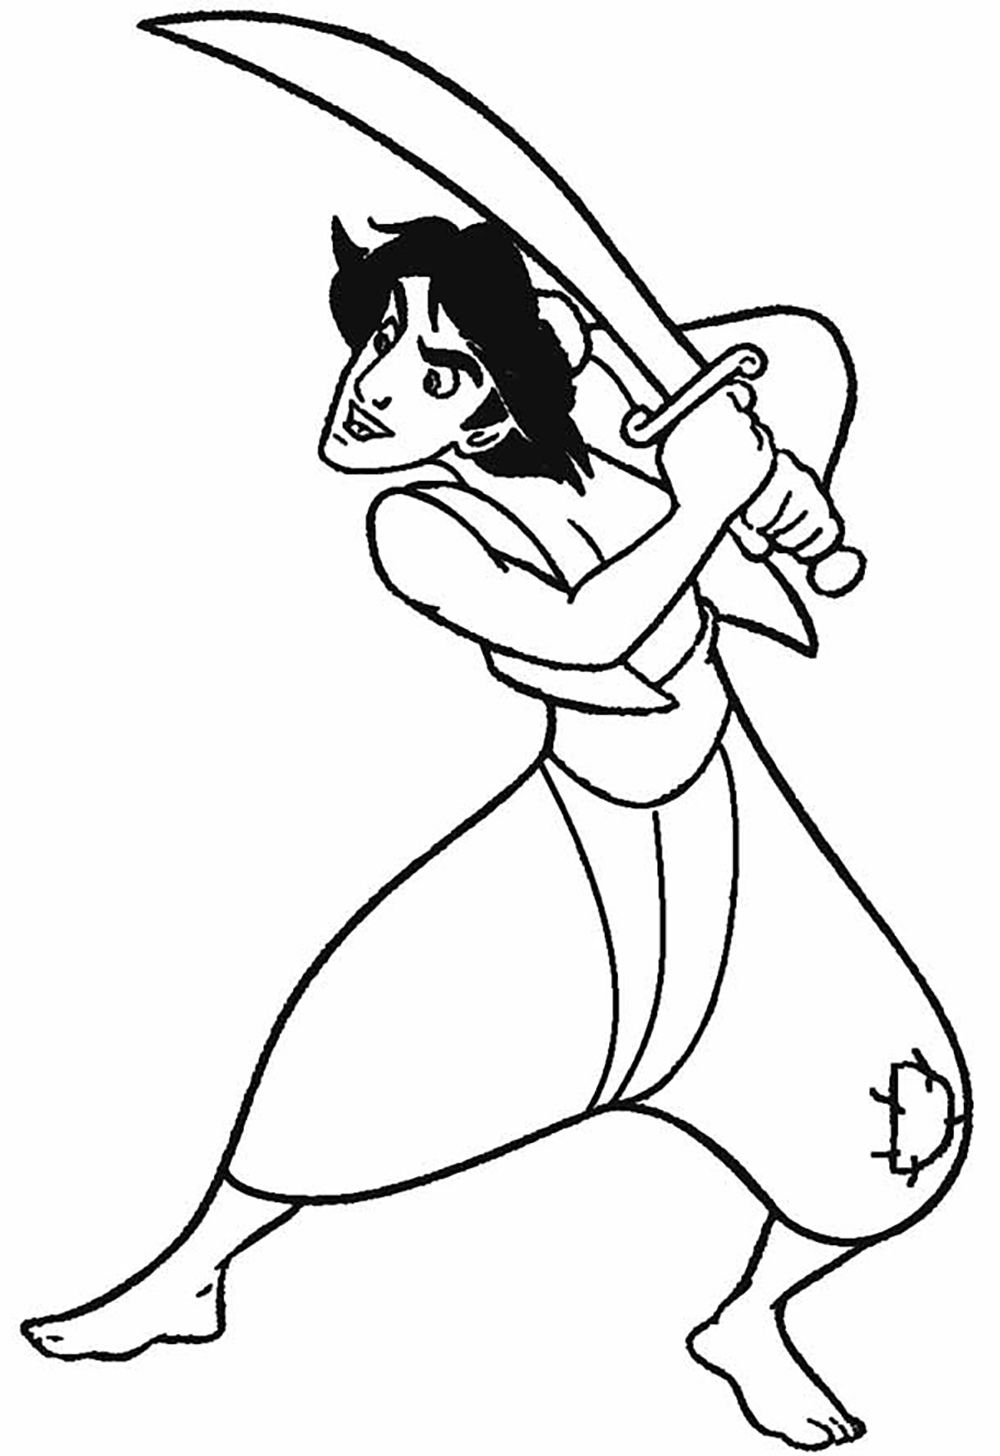 1000x1456 Aladdin Fighting With Swords Aladdin Coloring Pages